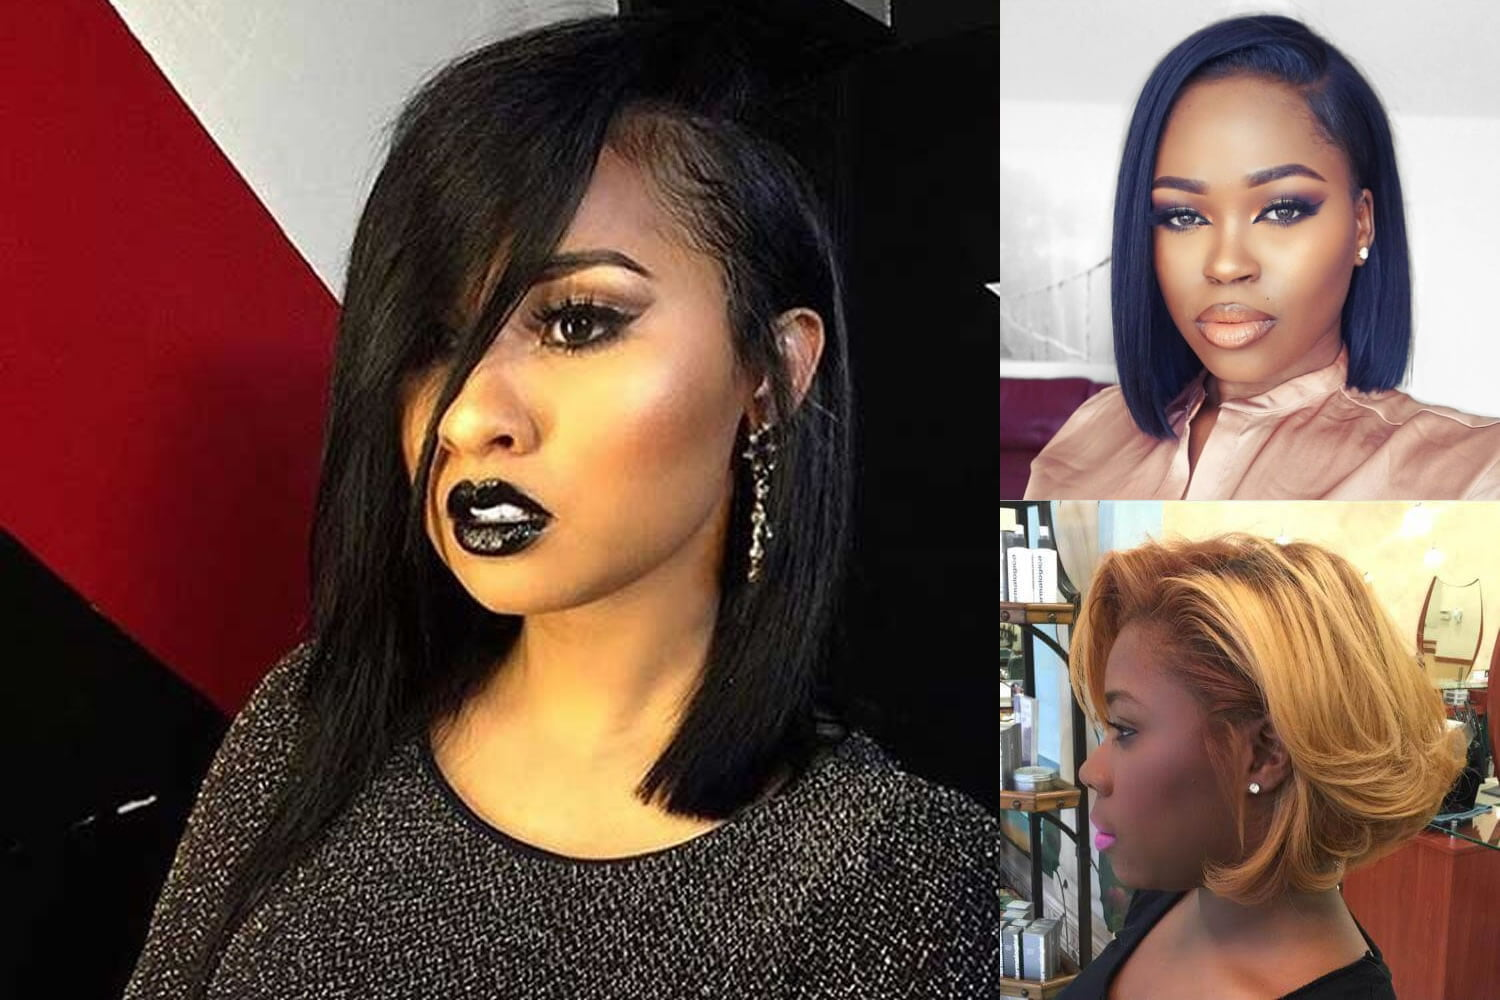 2018 Hairstyle For Dark Hair Color: Short Bob Hairstyle For Black Women & Hair Color Ideas